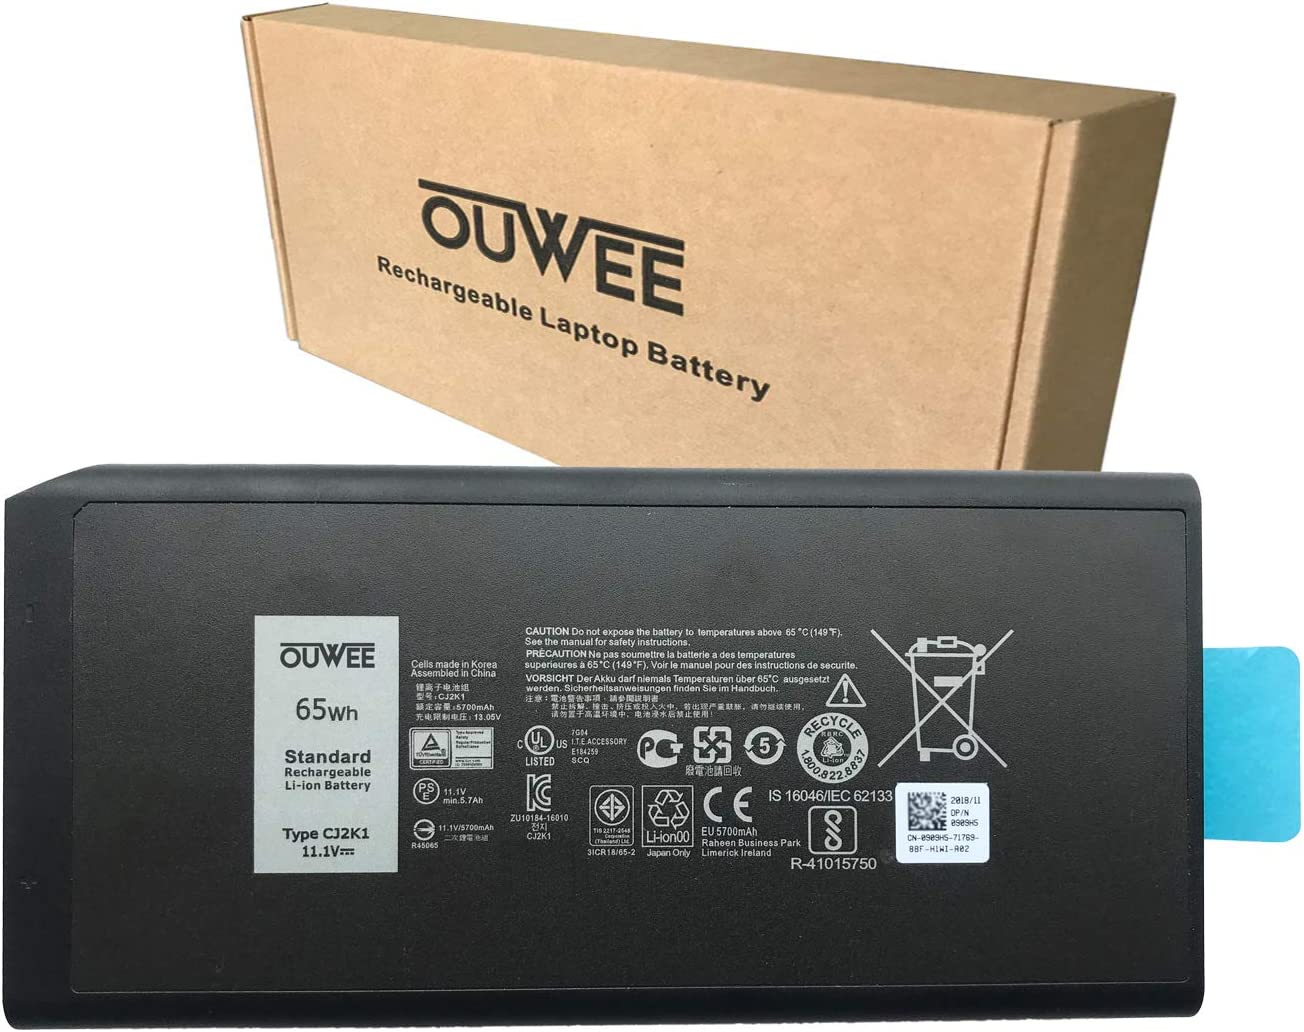 OUWEE CJ2K1 Laptop Battery Compatible with Dell Latitude 5404 7404 5414 7414 Rugged Extreme Series DKNKD X8VWF 4XKN5 05XT3V 0VCHGN 09FN4 XN4KN XRJDF YGV51 453-BBBE 0W11Y7 0909H5 11.1V 65Wh 5700mAh